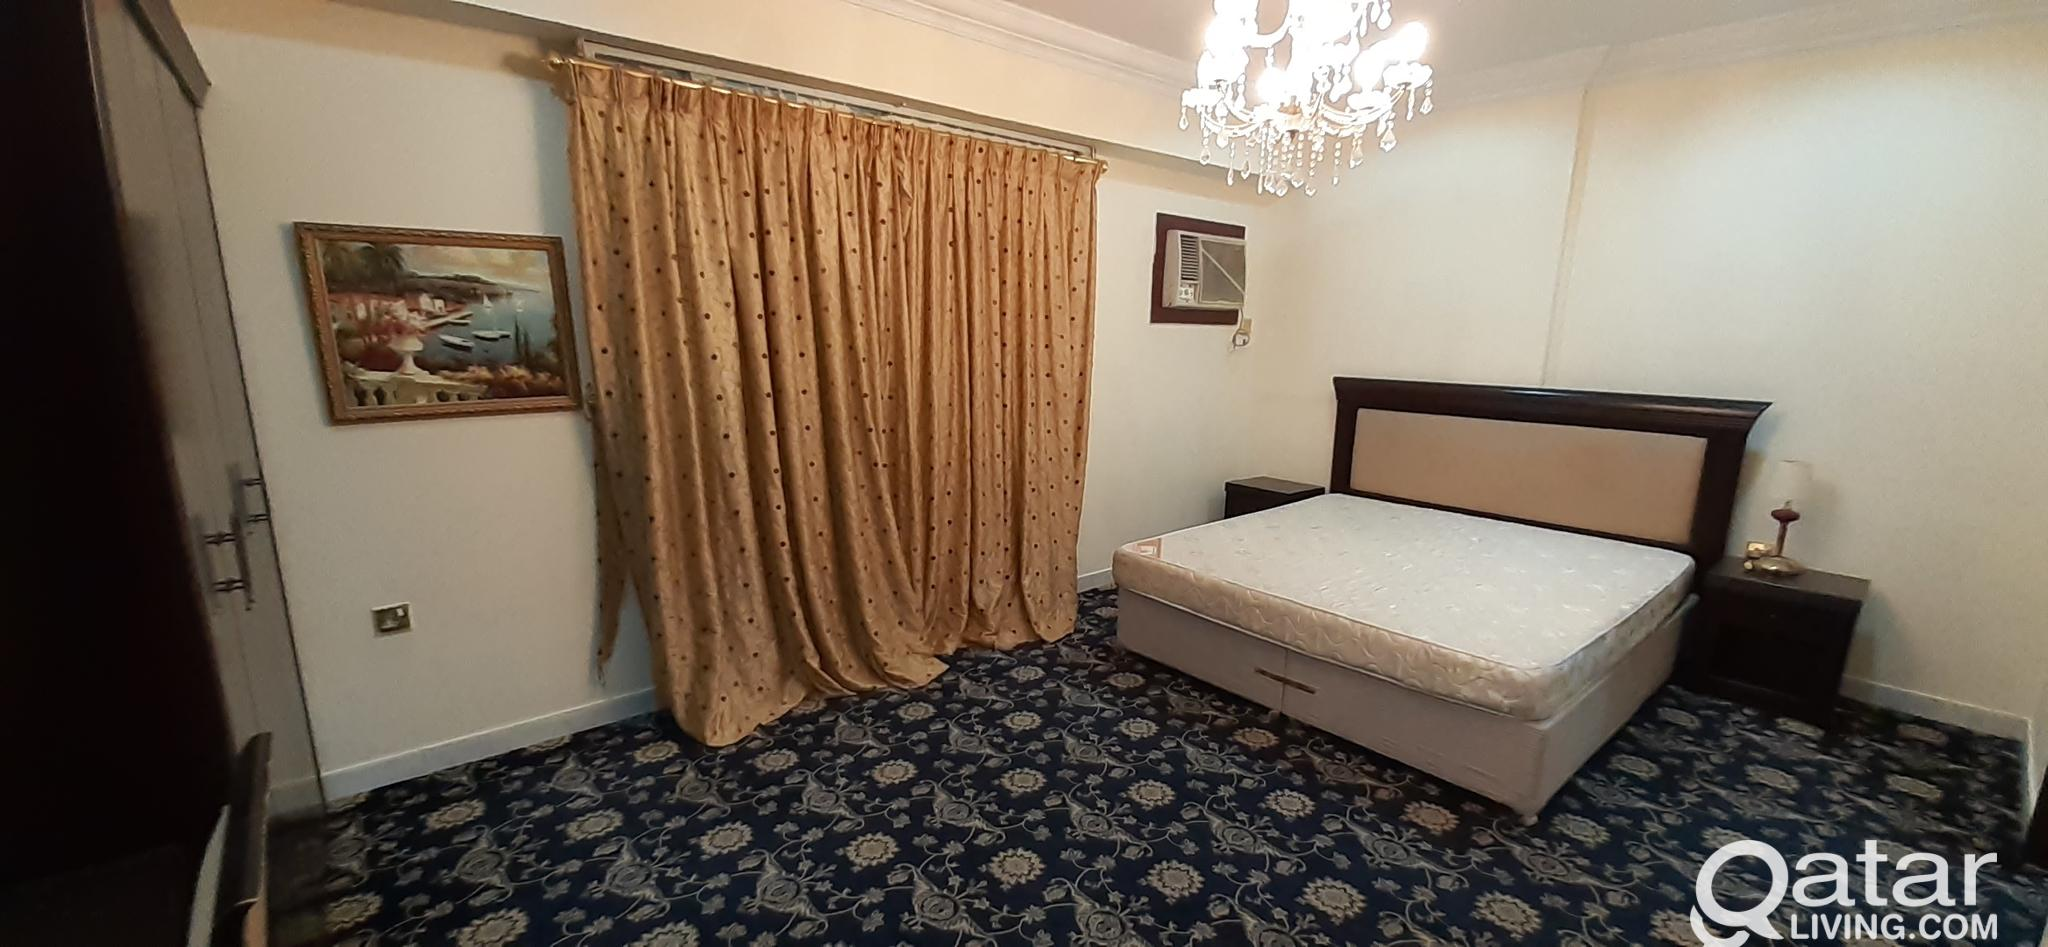 SPACIOUS 3 BED APARTMENT IN MANSOURA BEHIND HOLIDA